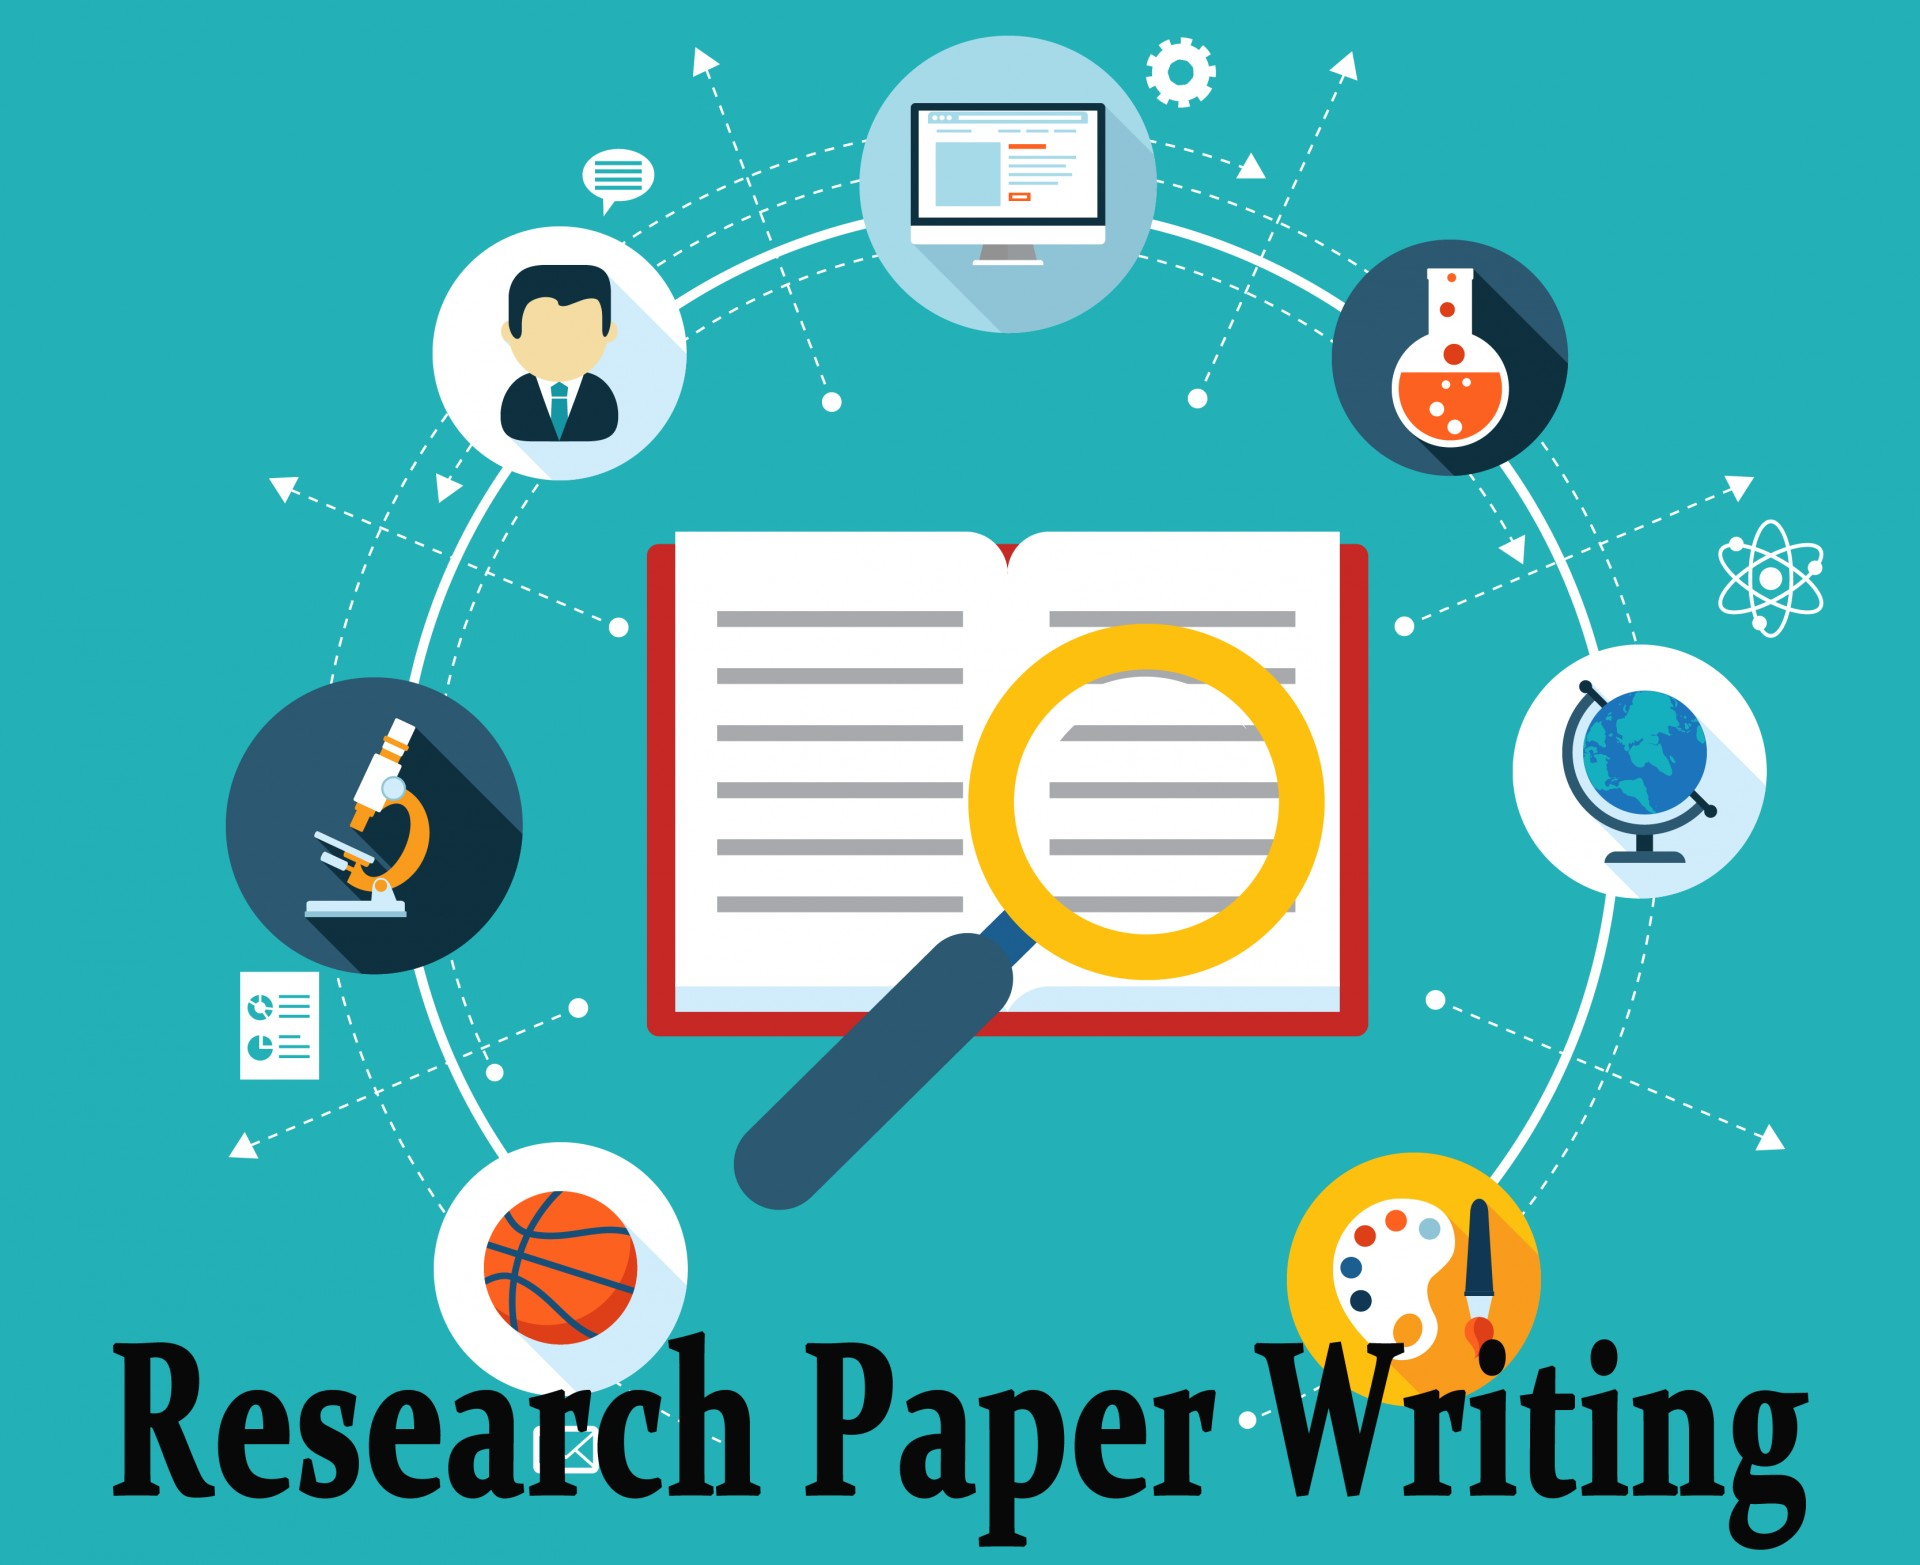 015 Research Paper 503 Effective Striking Writing Meme Papers A Complete Guide 15th Edition Pdf Free 16th 1920